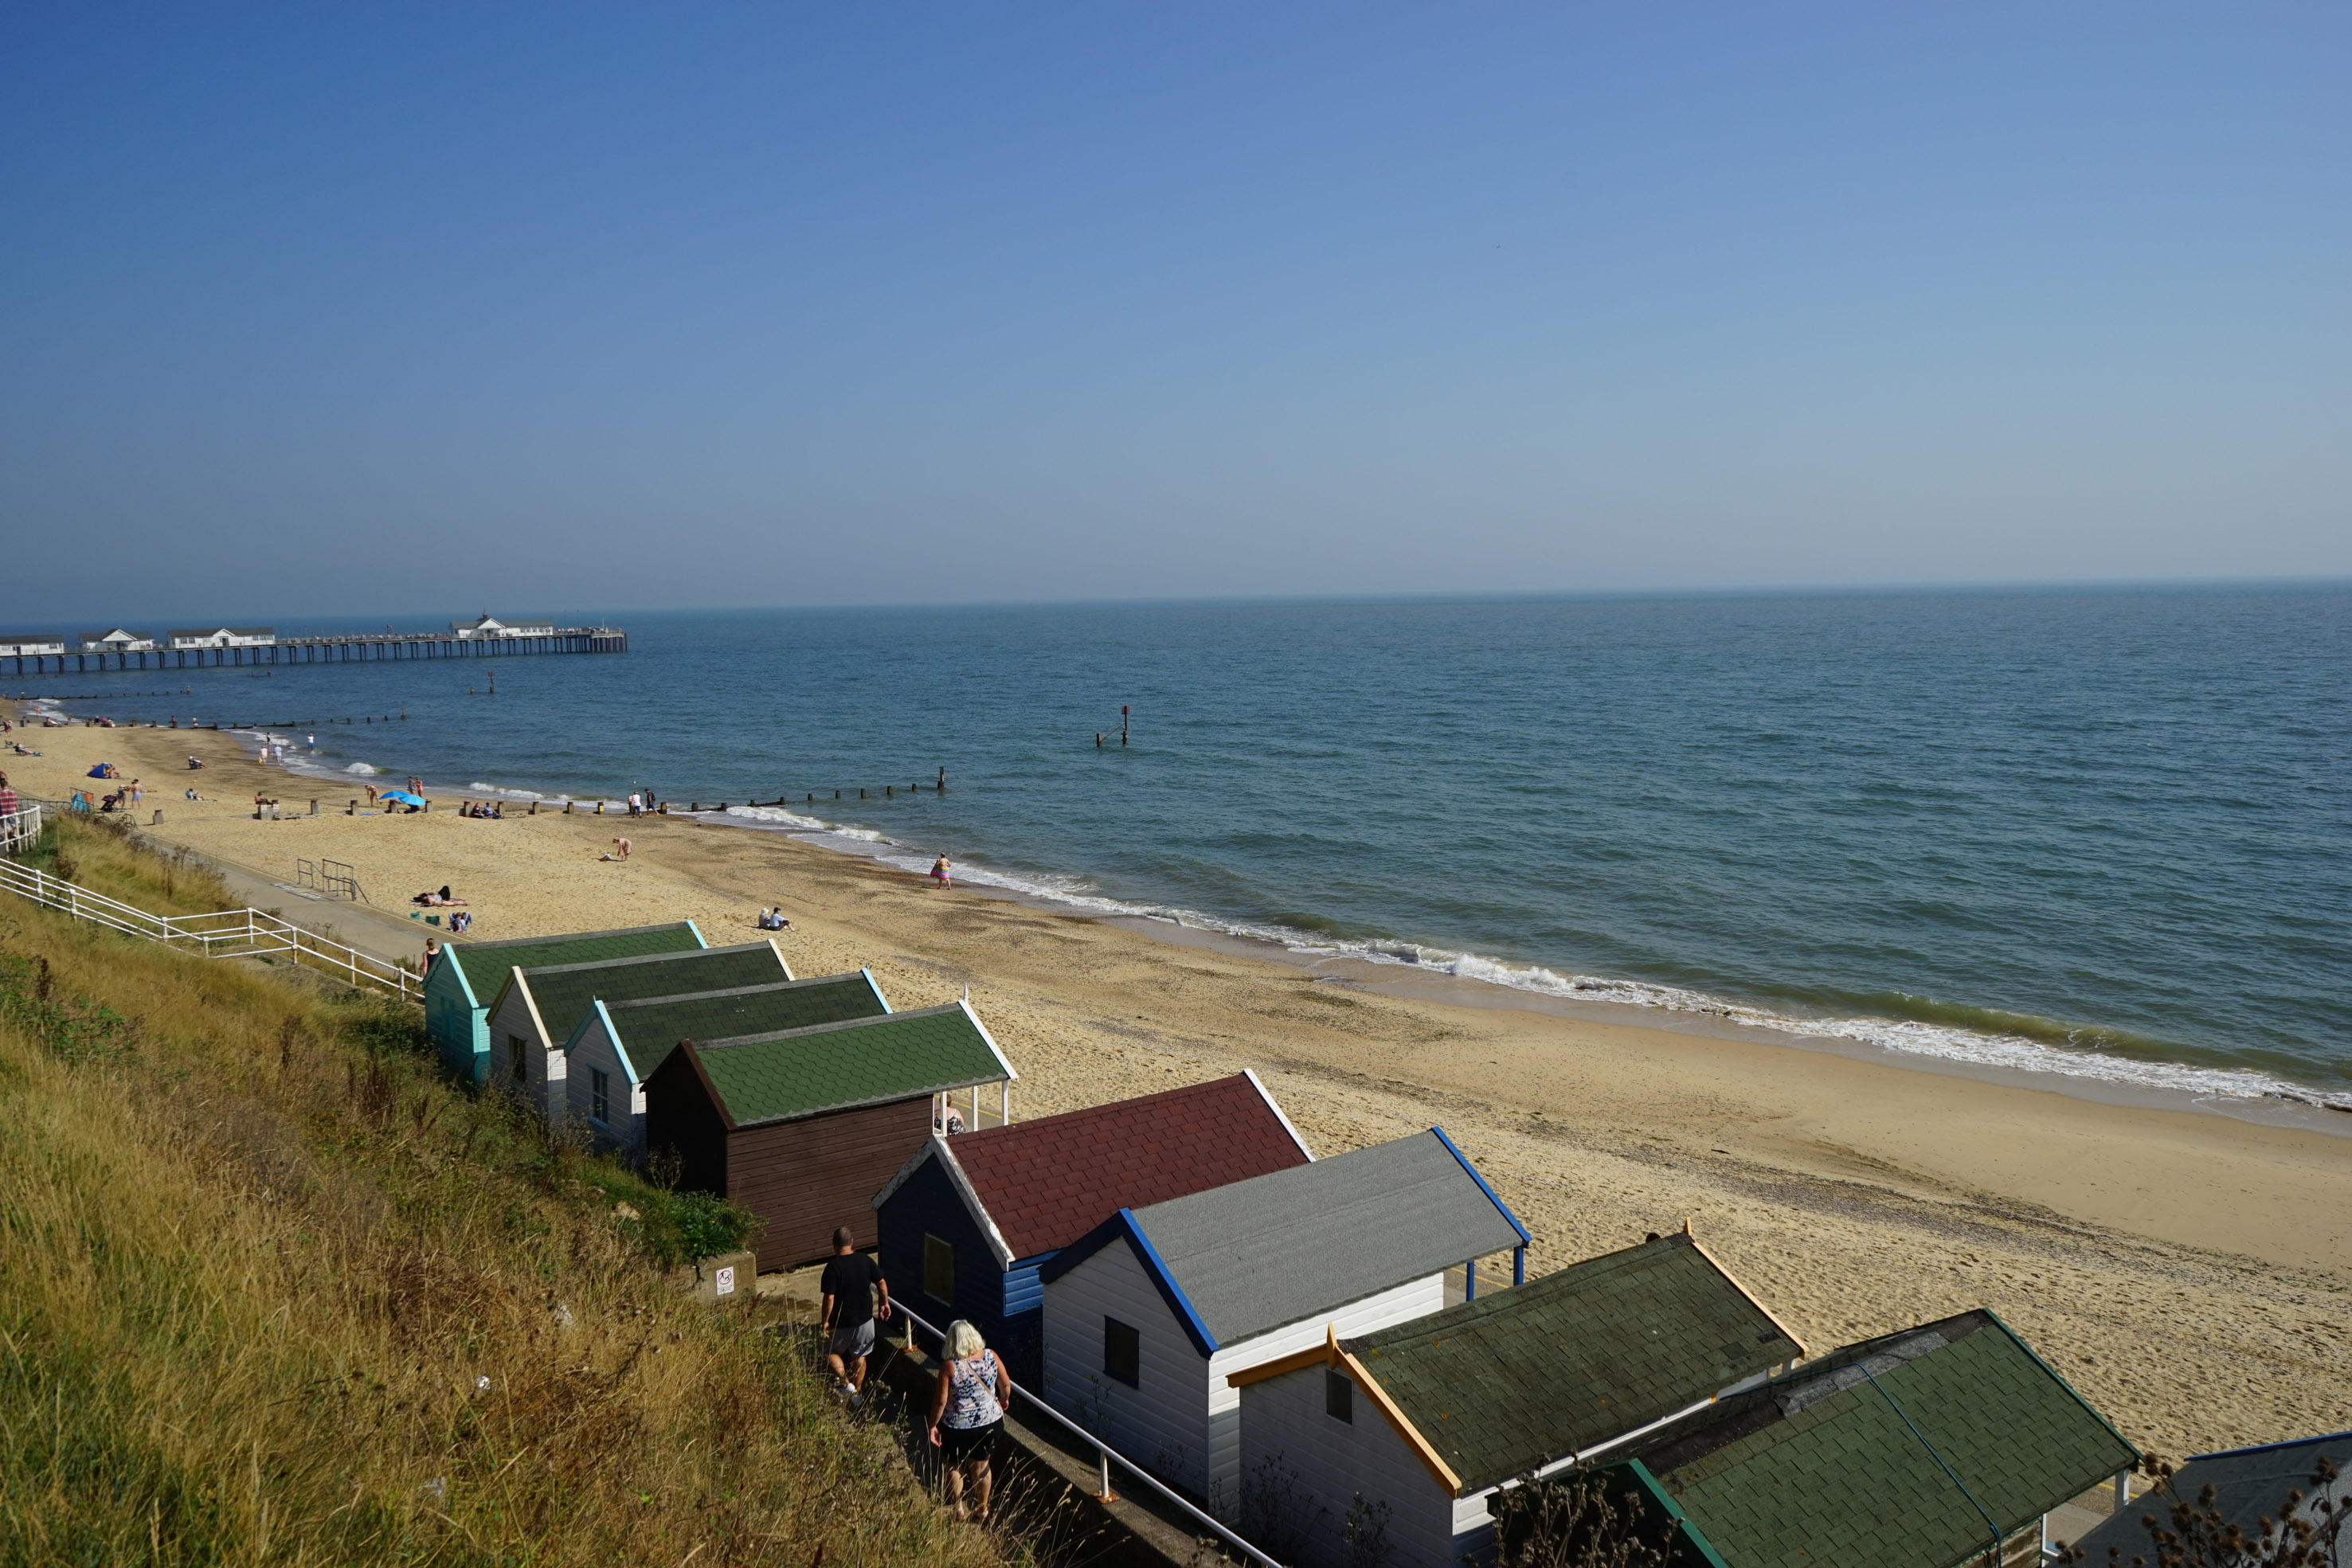 Southwold Seafront view of beach huts and Pier